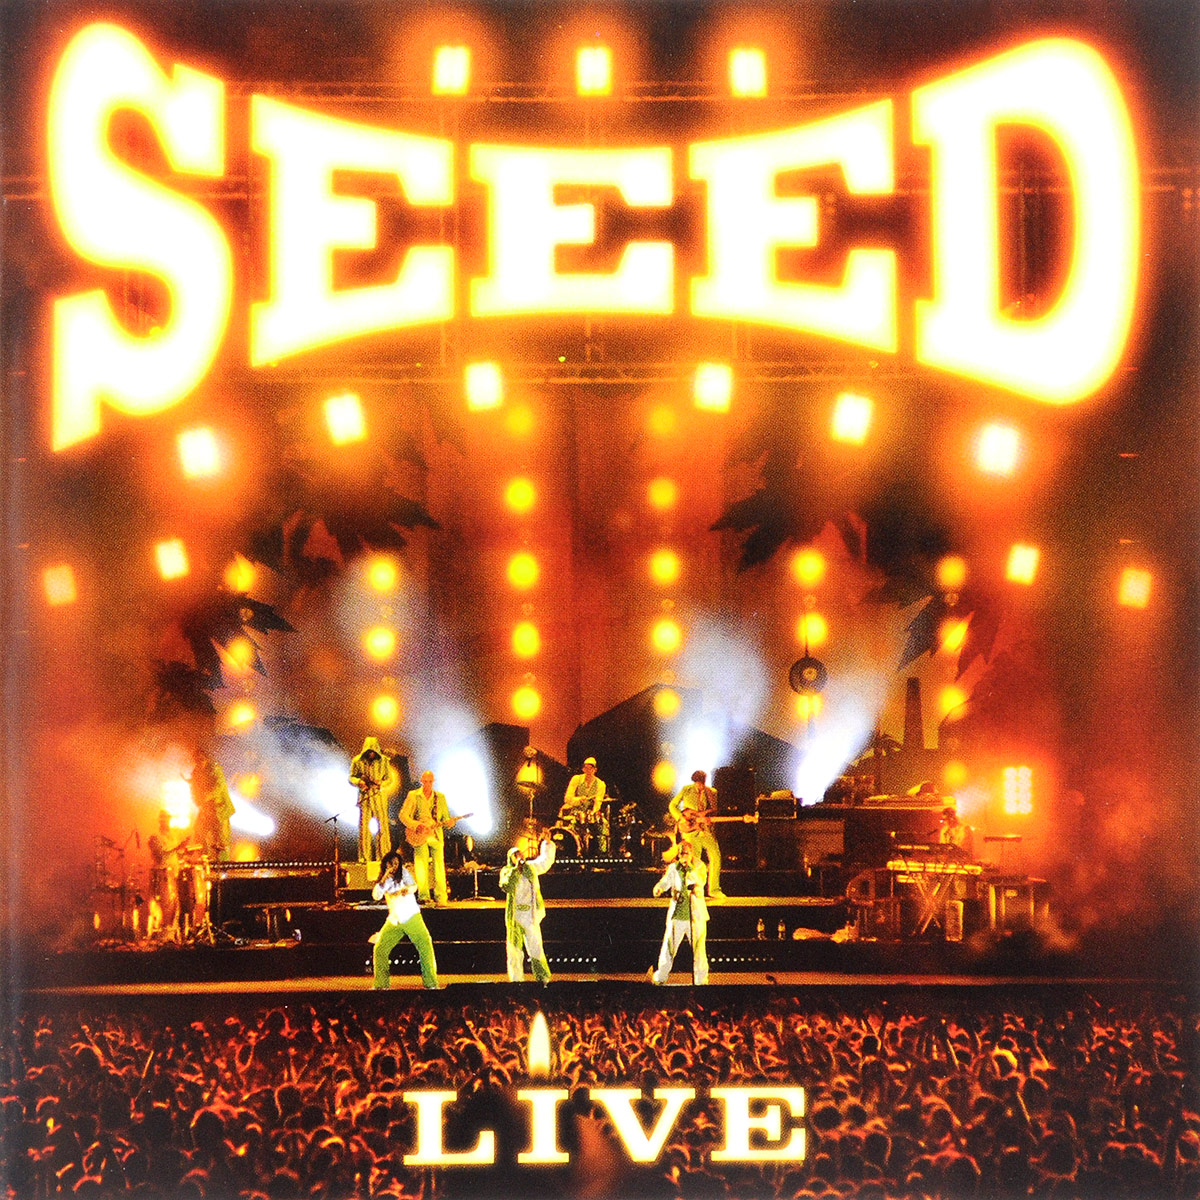 Seeed Seeed. Live seeed frankfurt am main